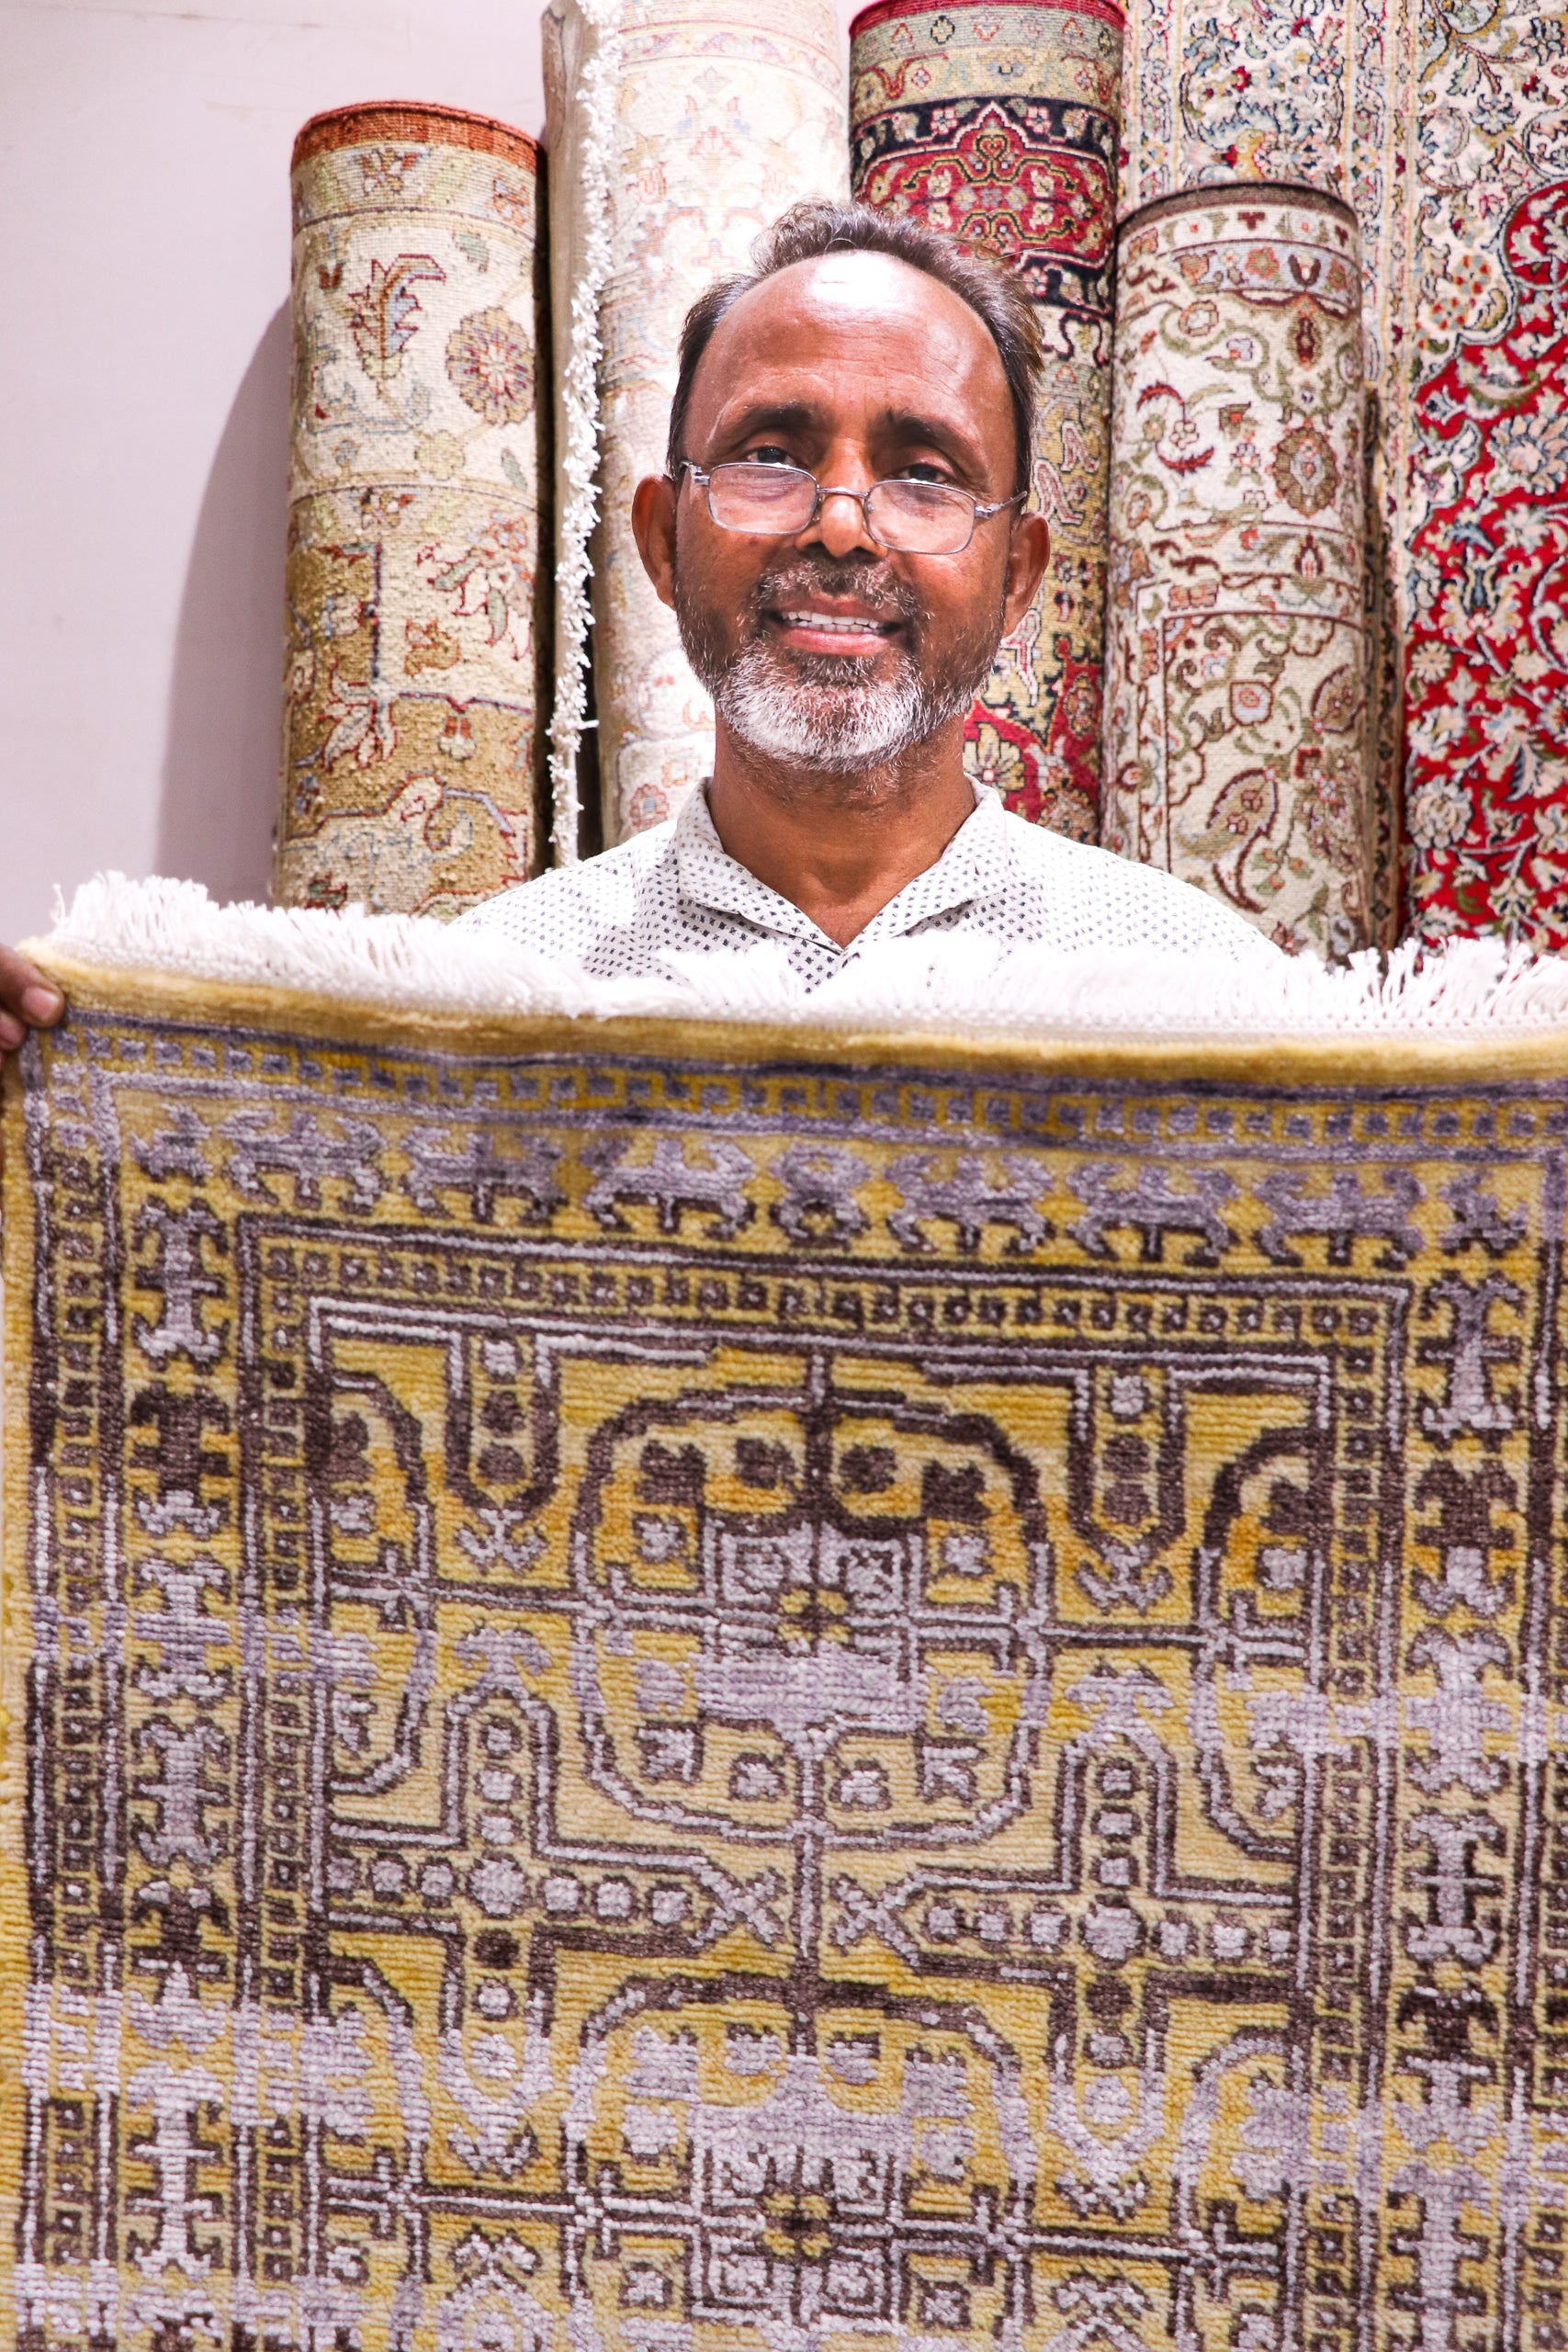 Faiyaaz with his recent carpet